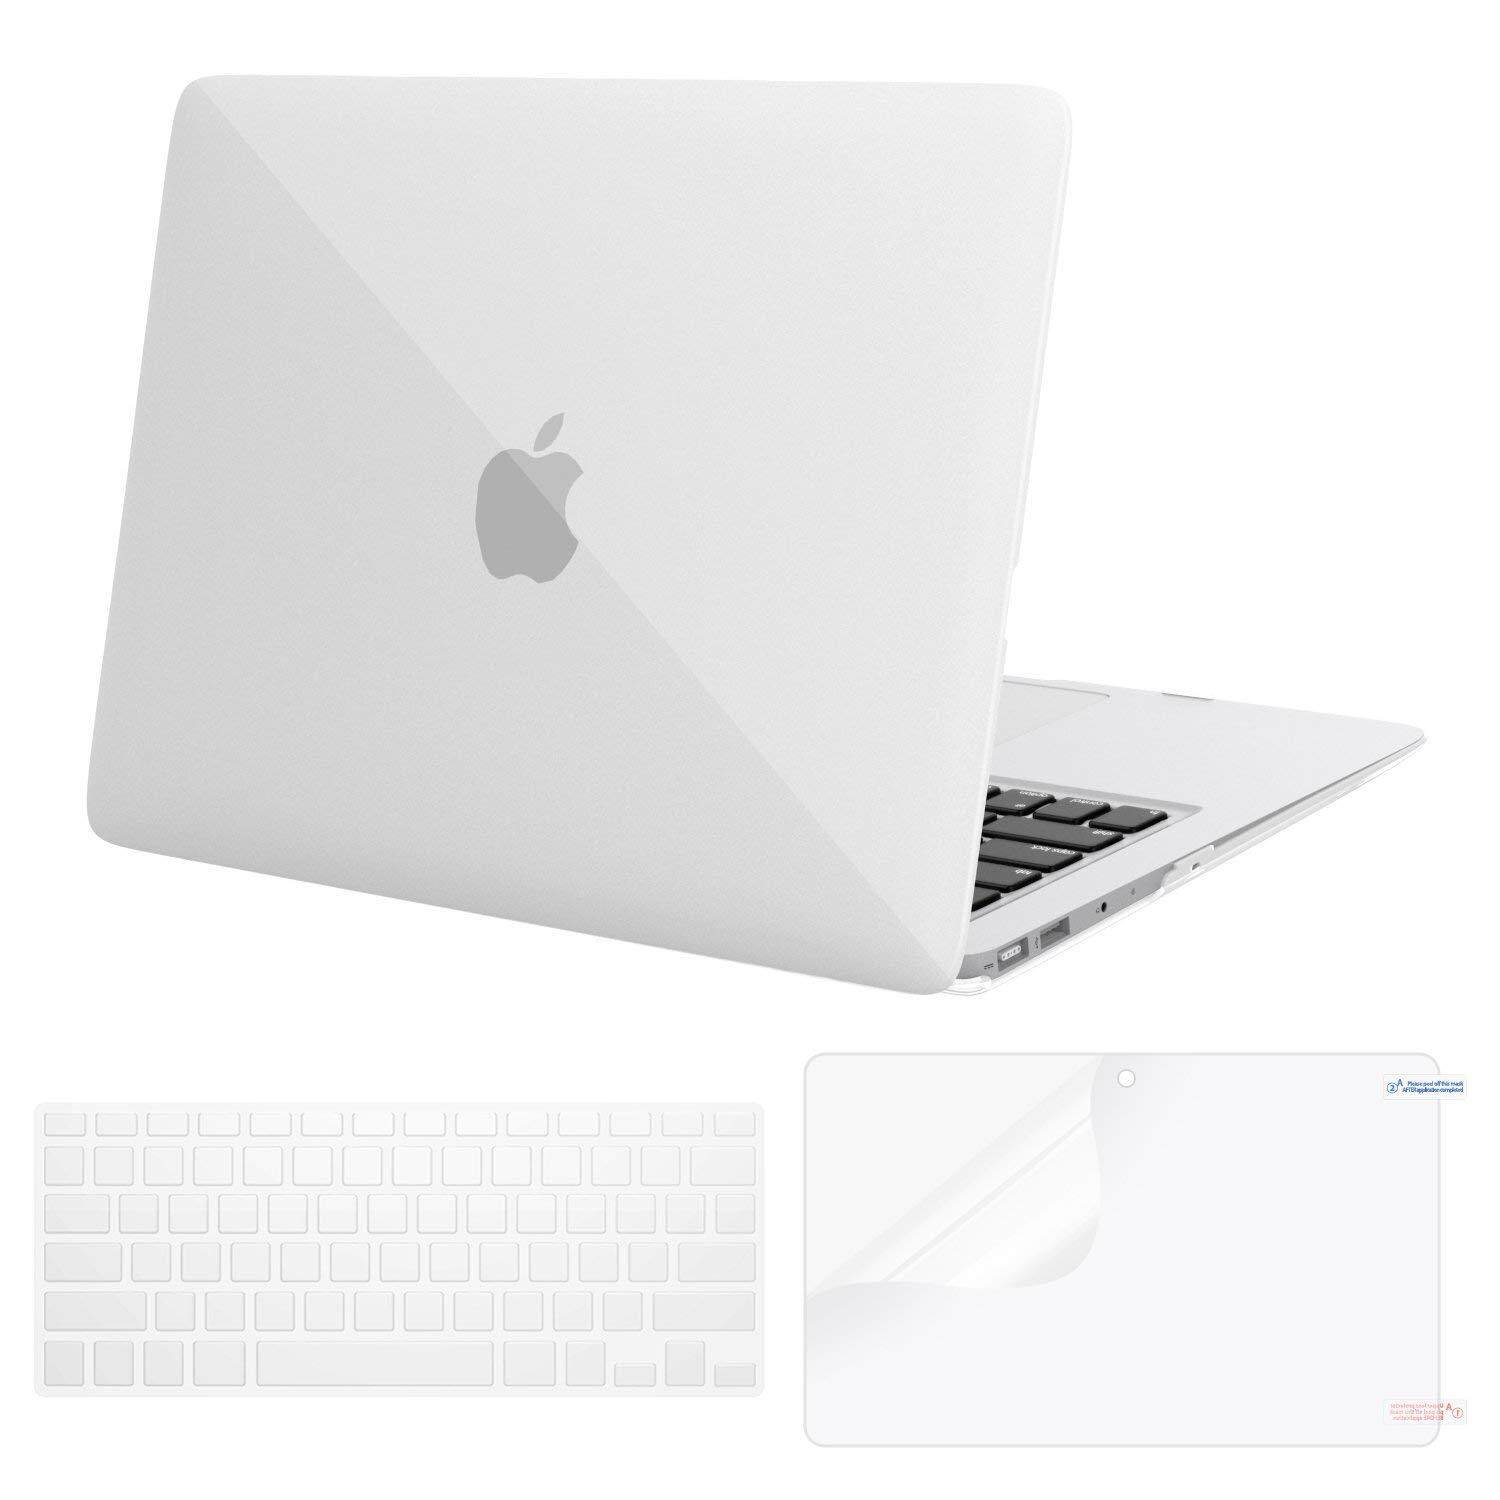 Casing Macbook Plastik Casing Keras Berpola & Penutup Papan Ketik & Pelindung Layar Hanya Kompatibel MACBOOK AIR 13 Inch (A1369 & A1466), tidak Kompatibel 2018 MACBOOK AIR 13 dengan Touch ID